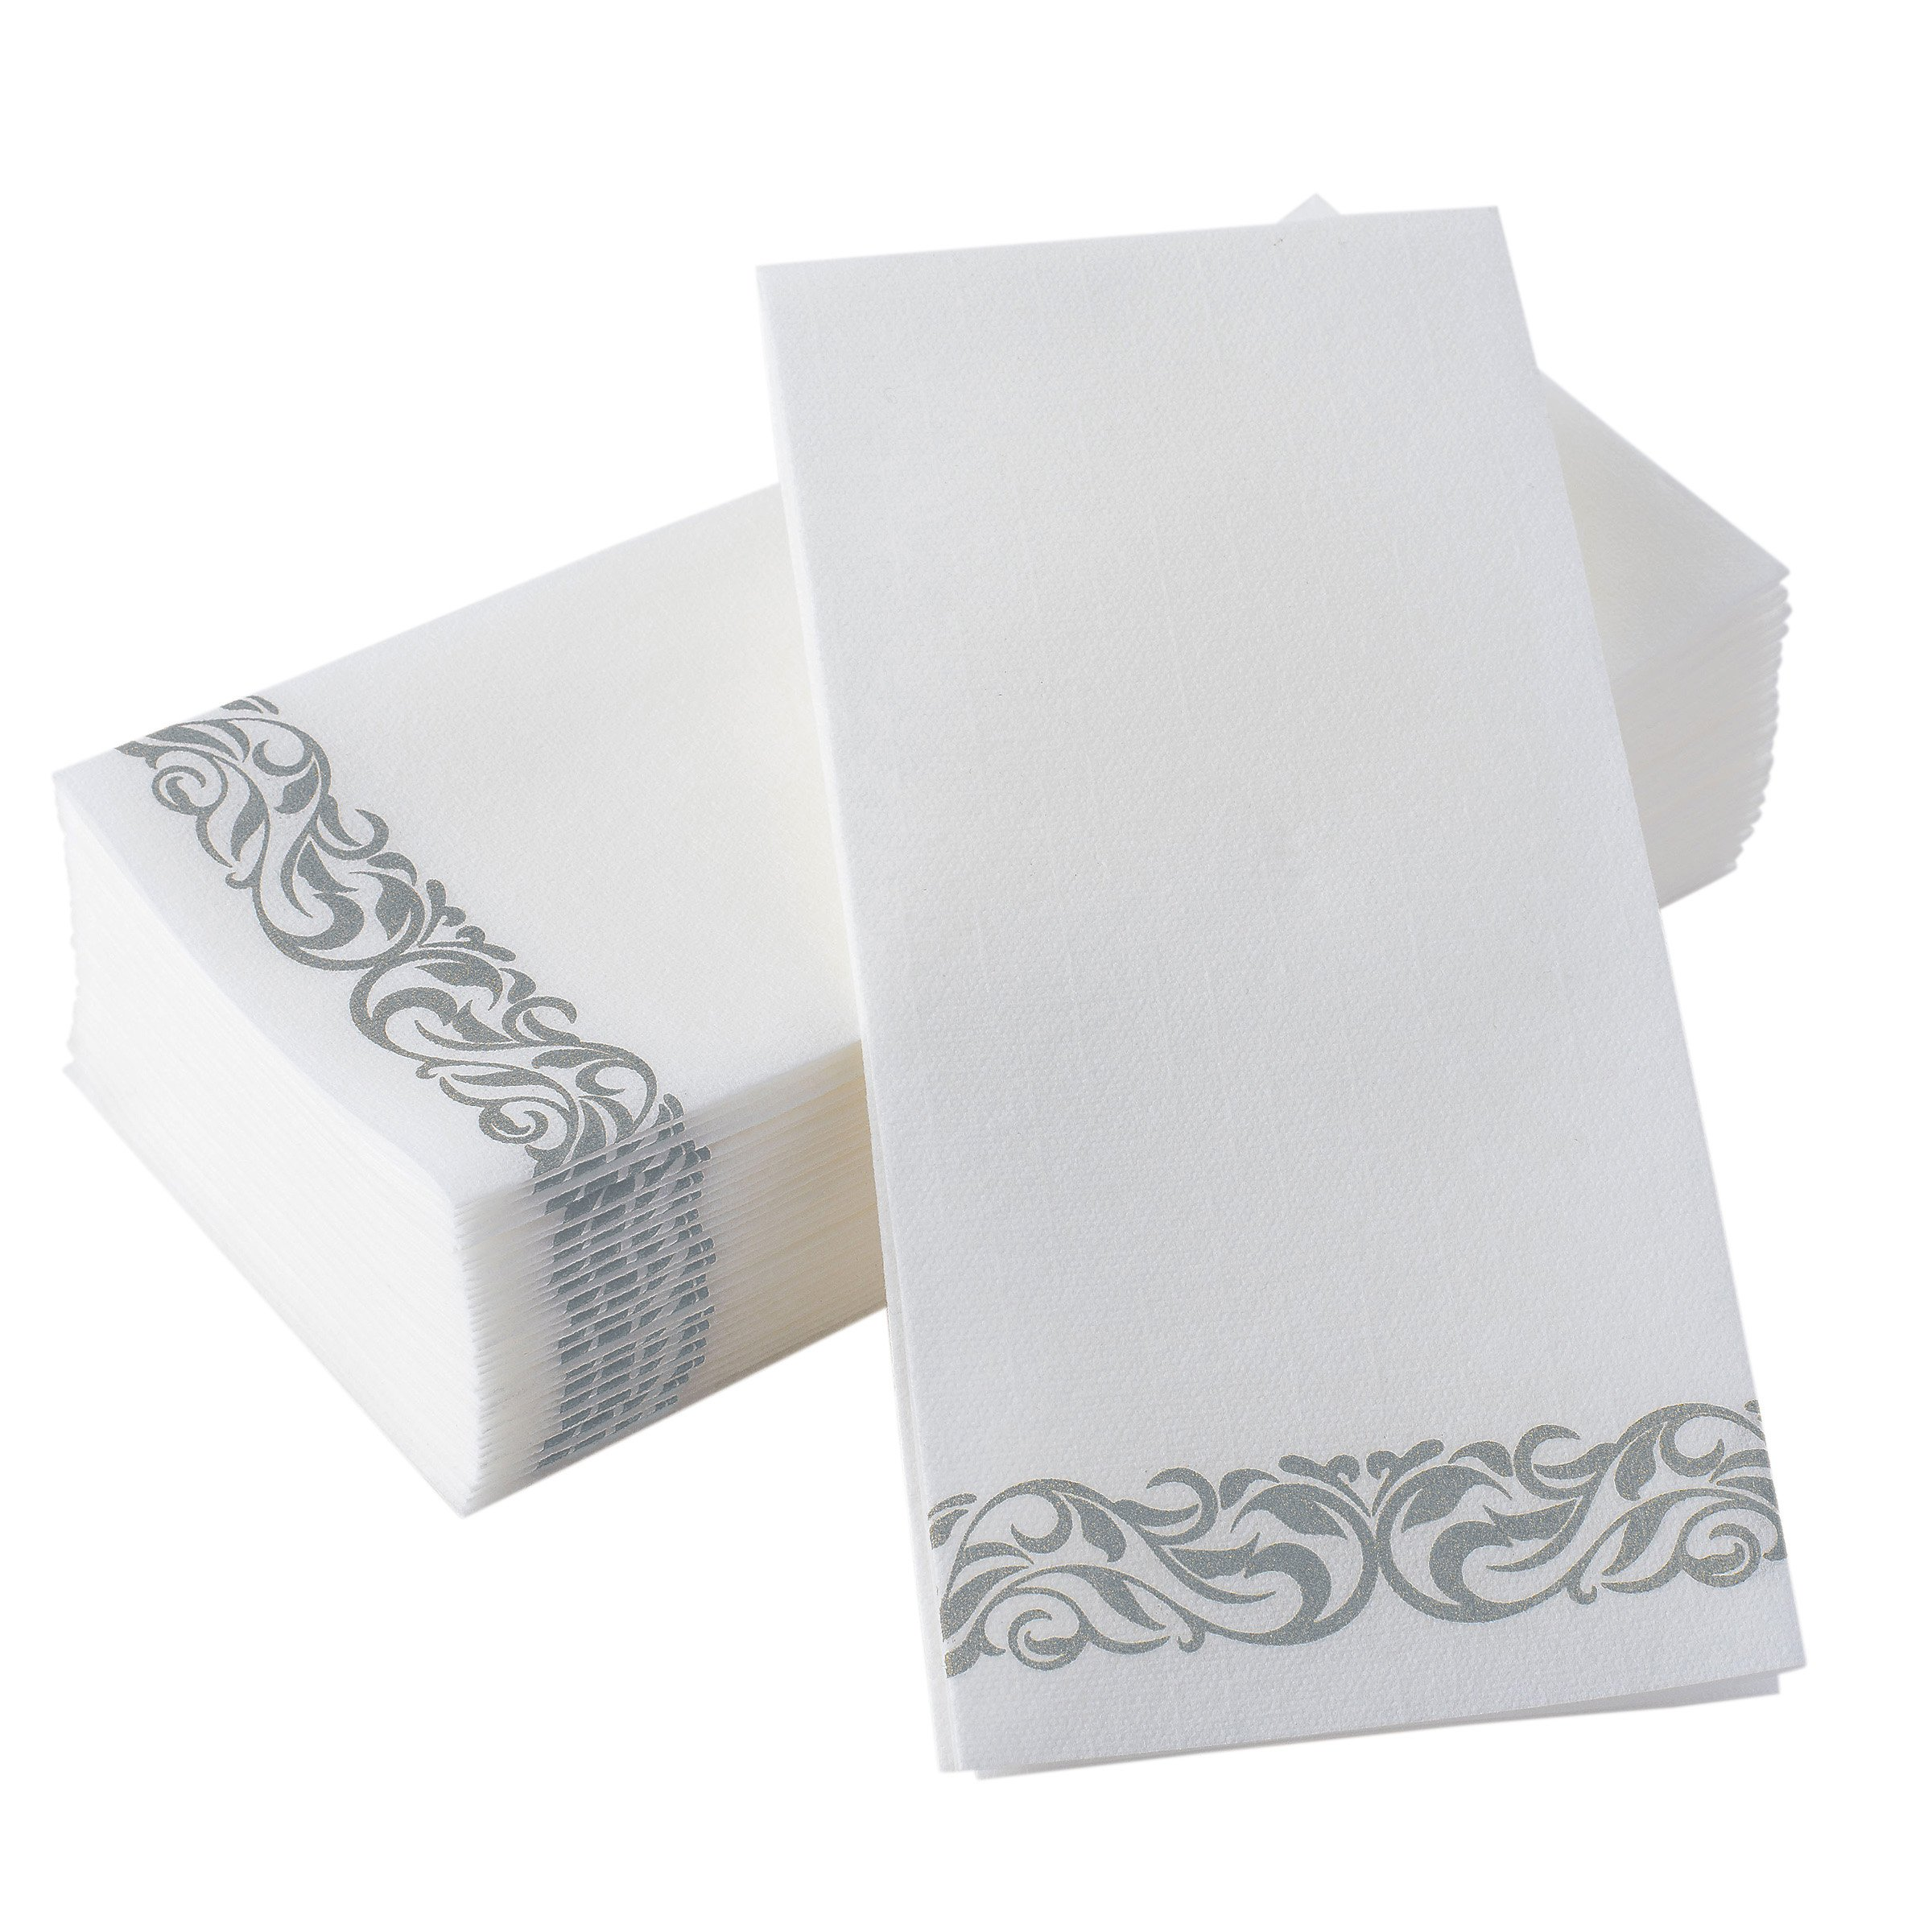 Bloomingoods Disposable Linen-Feel Guest Towels - Decorative White Hand Towels, Silver Floral Cloth-Like Paper Napkins - Case of 1000 (Bulk Packaging)